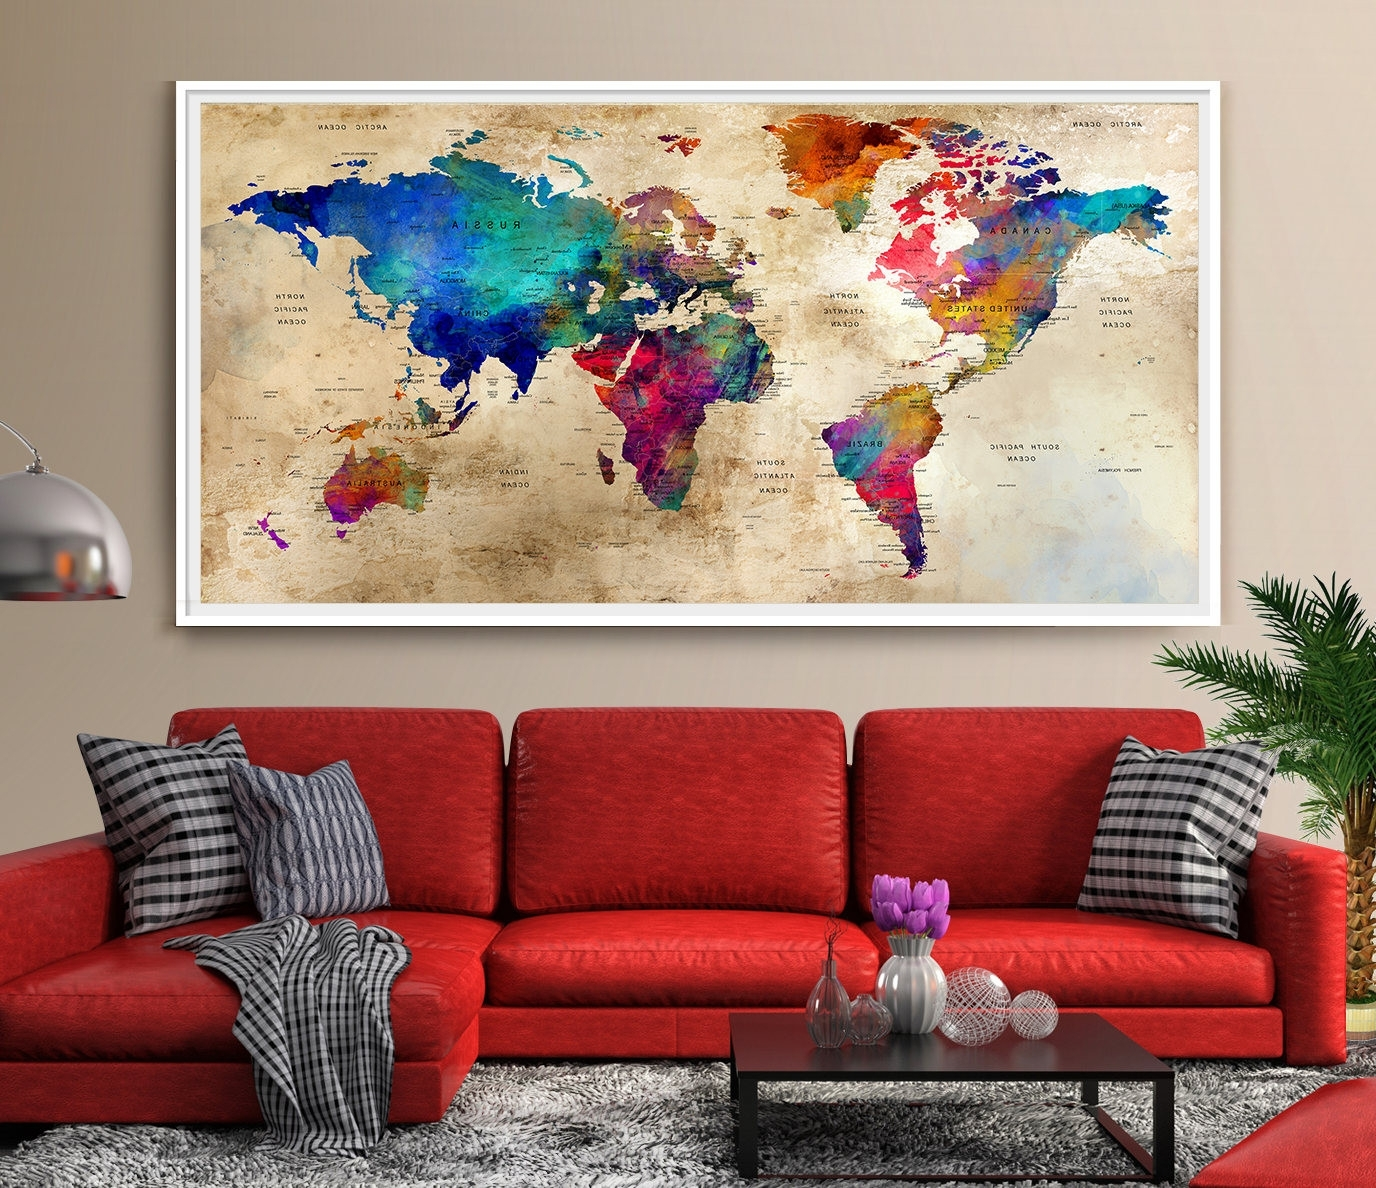 Widely Used Modern Wall Art Decors For Wall Decoration Colorful Art Paintings For Home Decor Living Design (View 15 of 15)